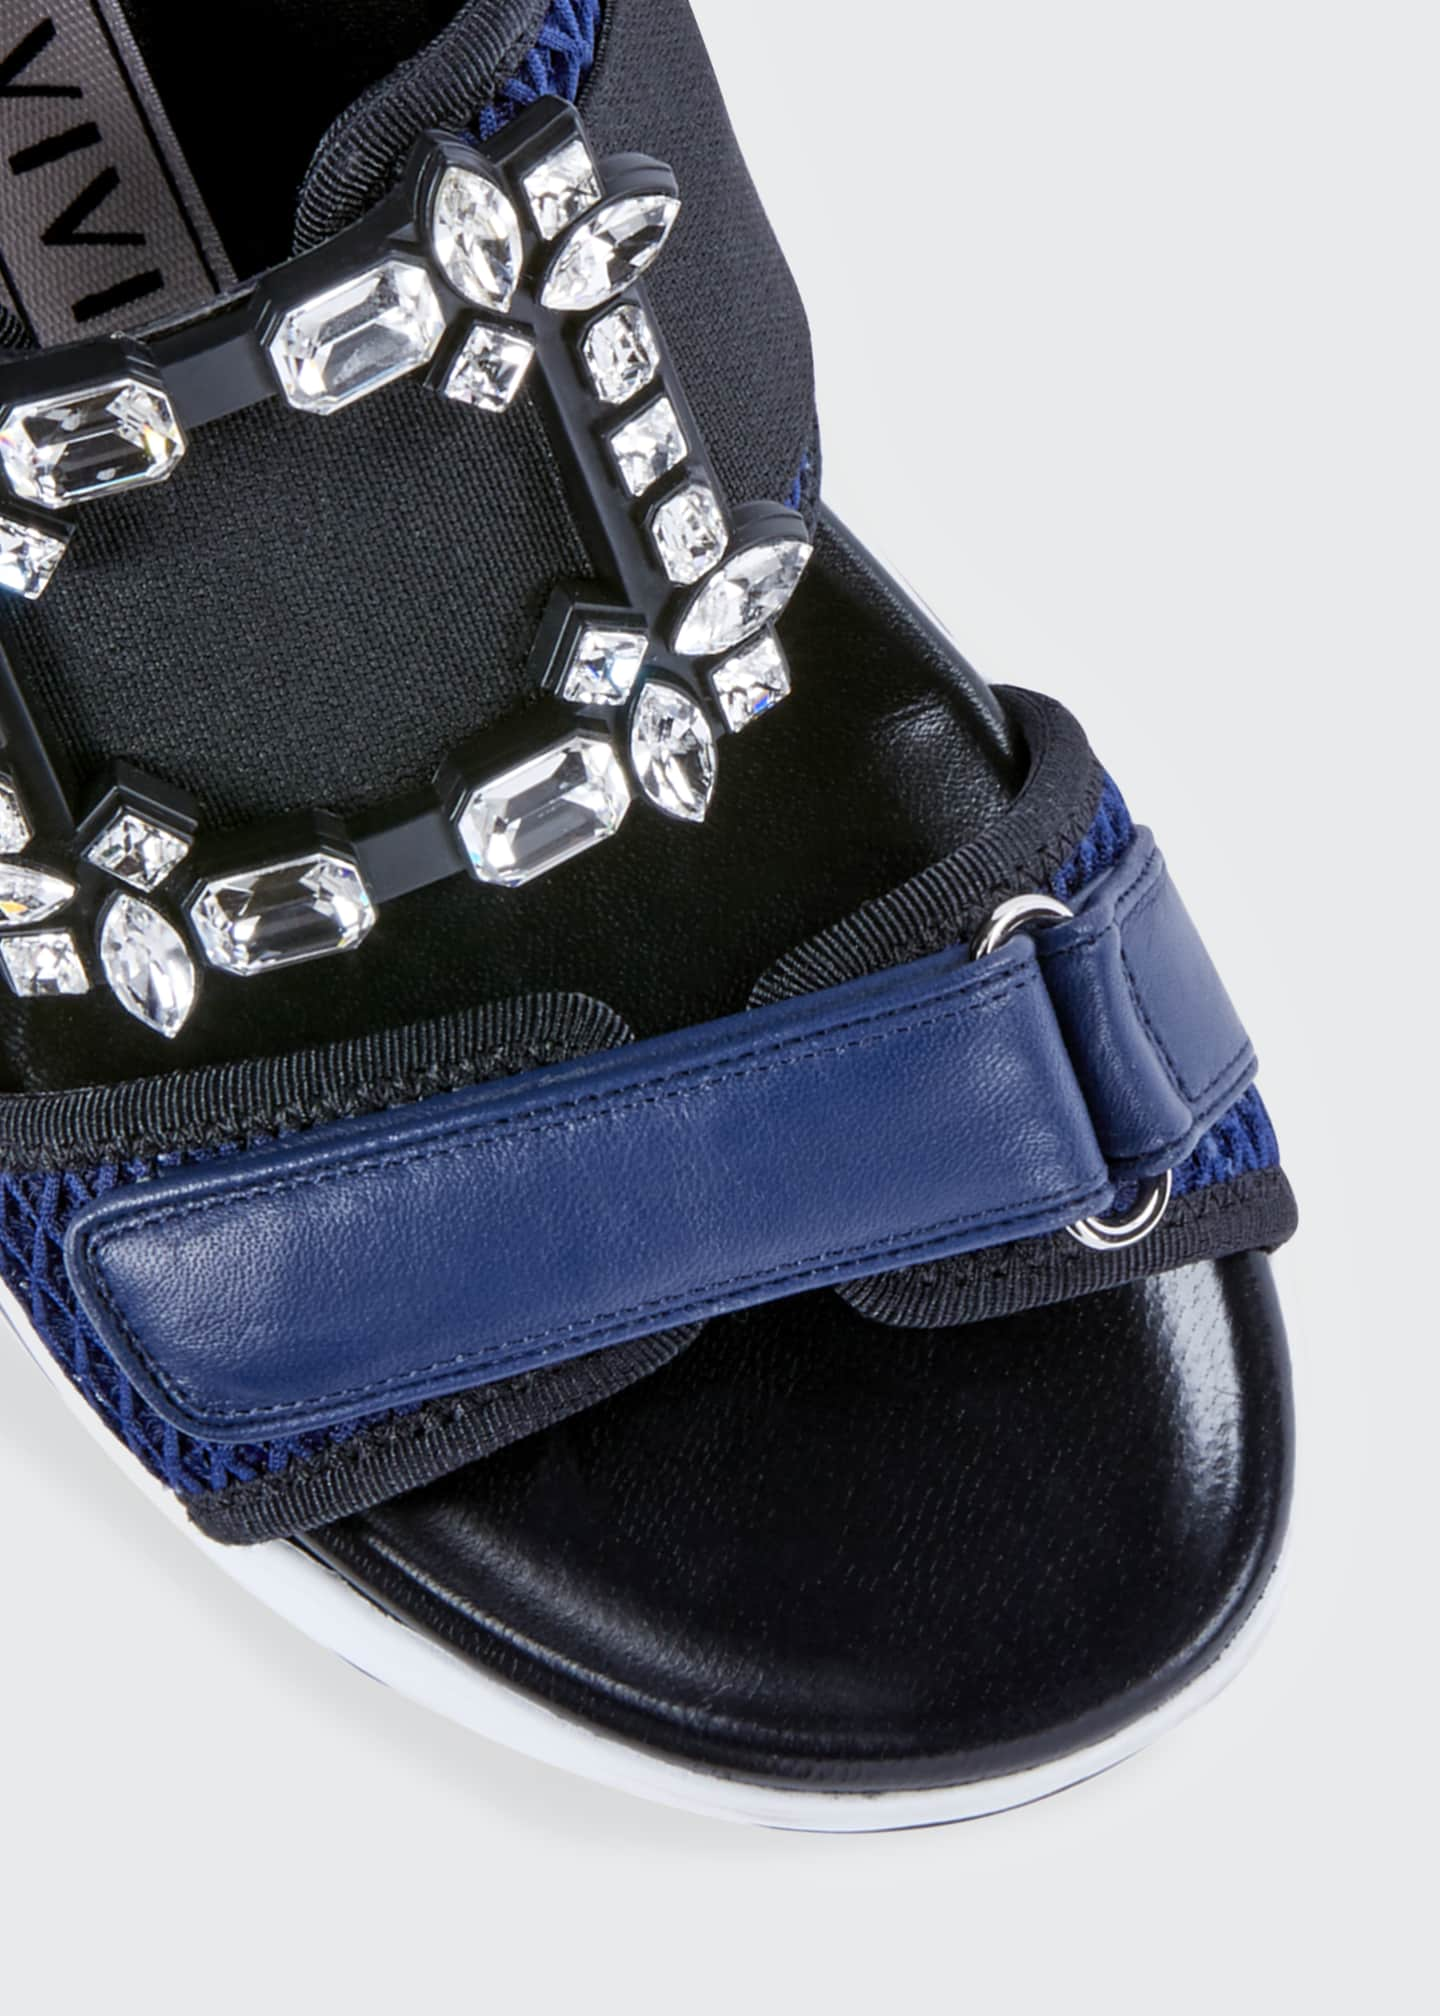 Image 3 of 3: Viv' Run Strass Buckle Sandals